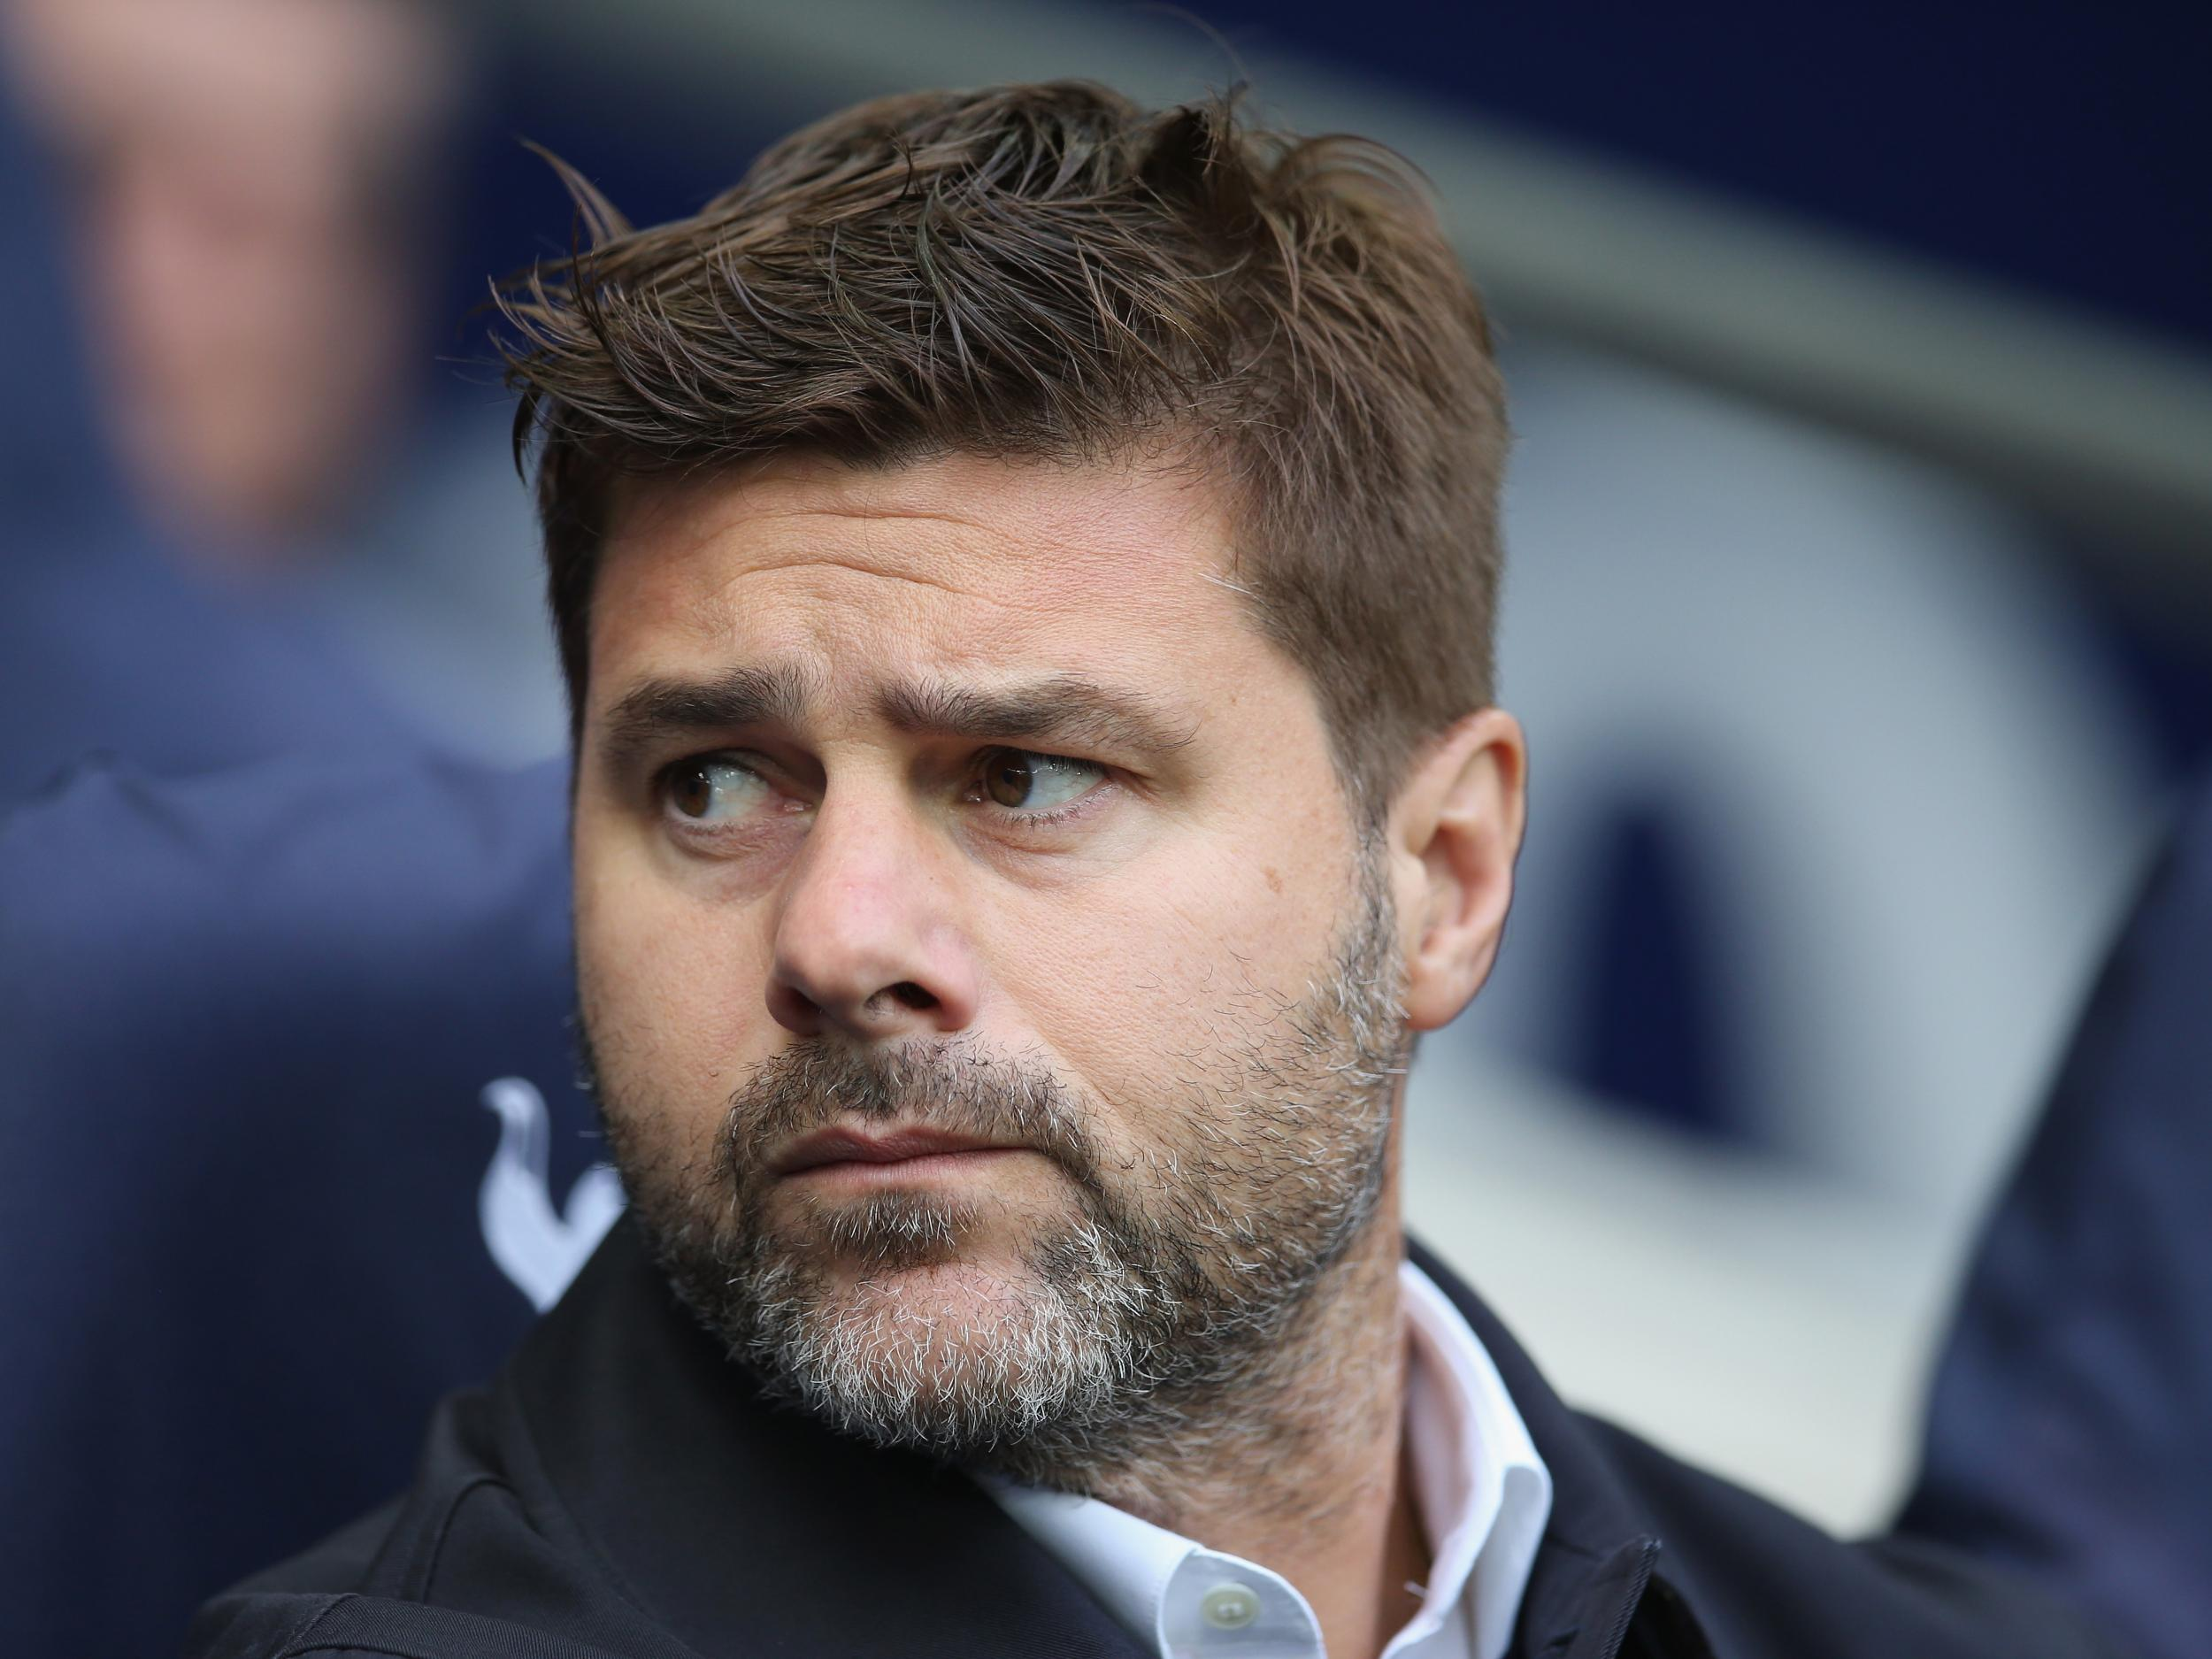 Tottenham manager Mauricio Pochettino reveals ambitions to manage England